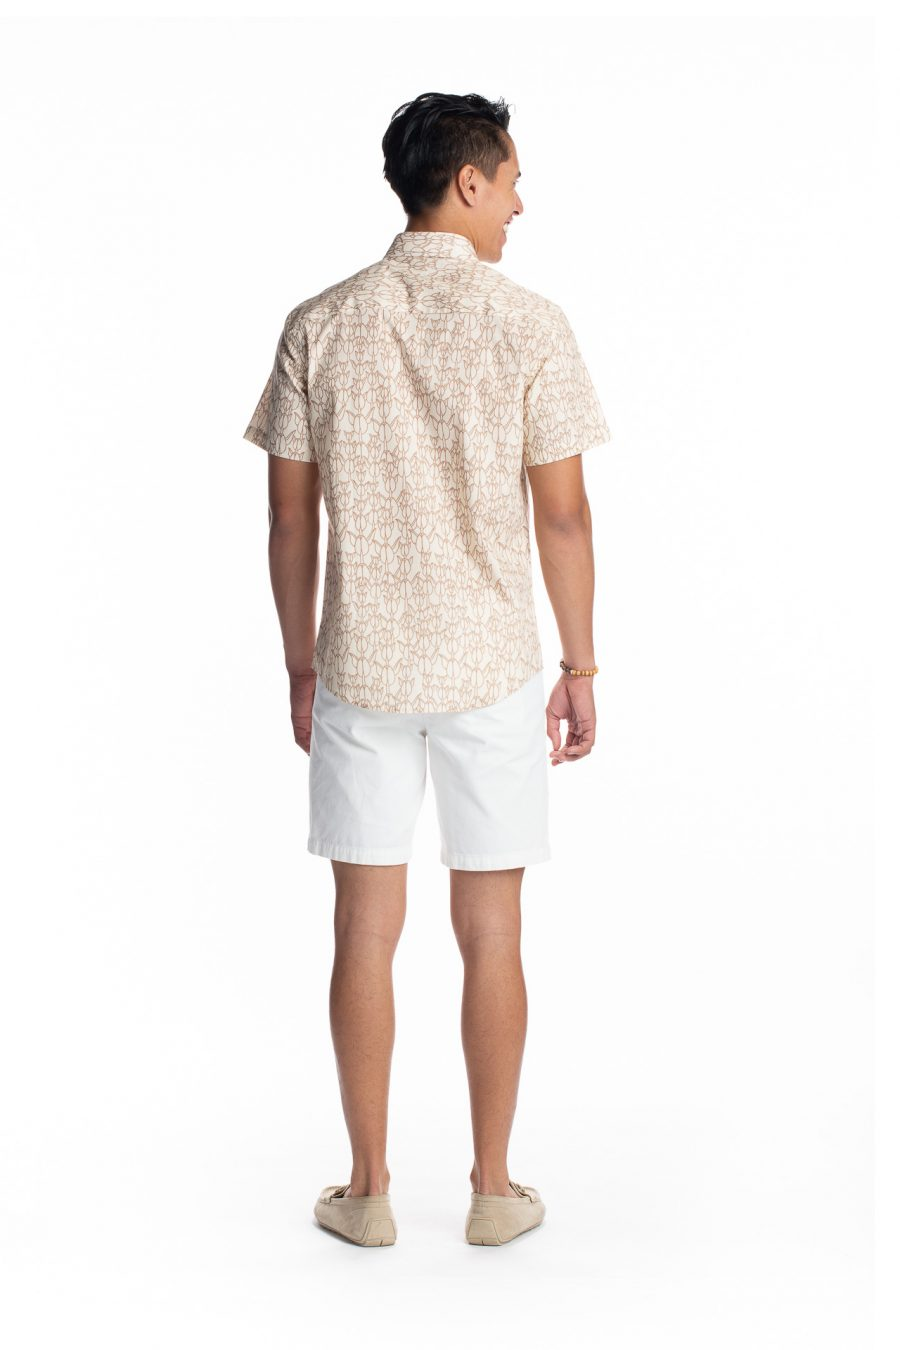 Male model wearing Aloha Short Sleeve in White Swan/Gingersnap - Back View